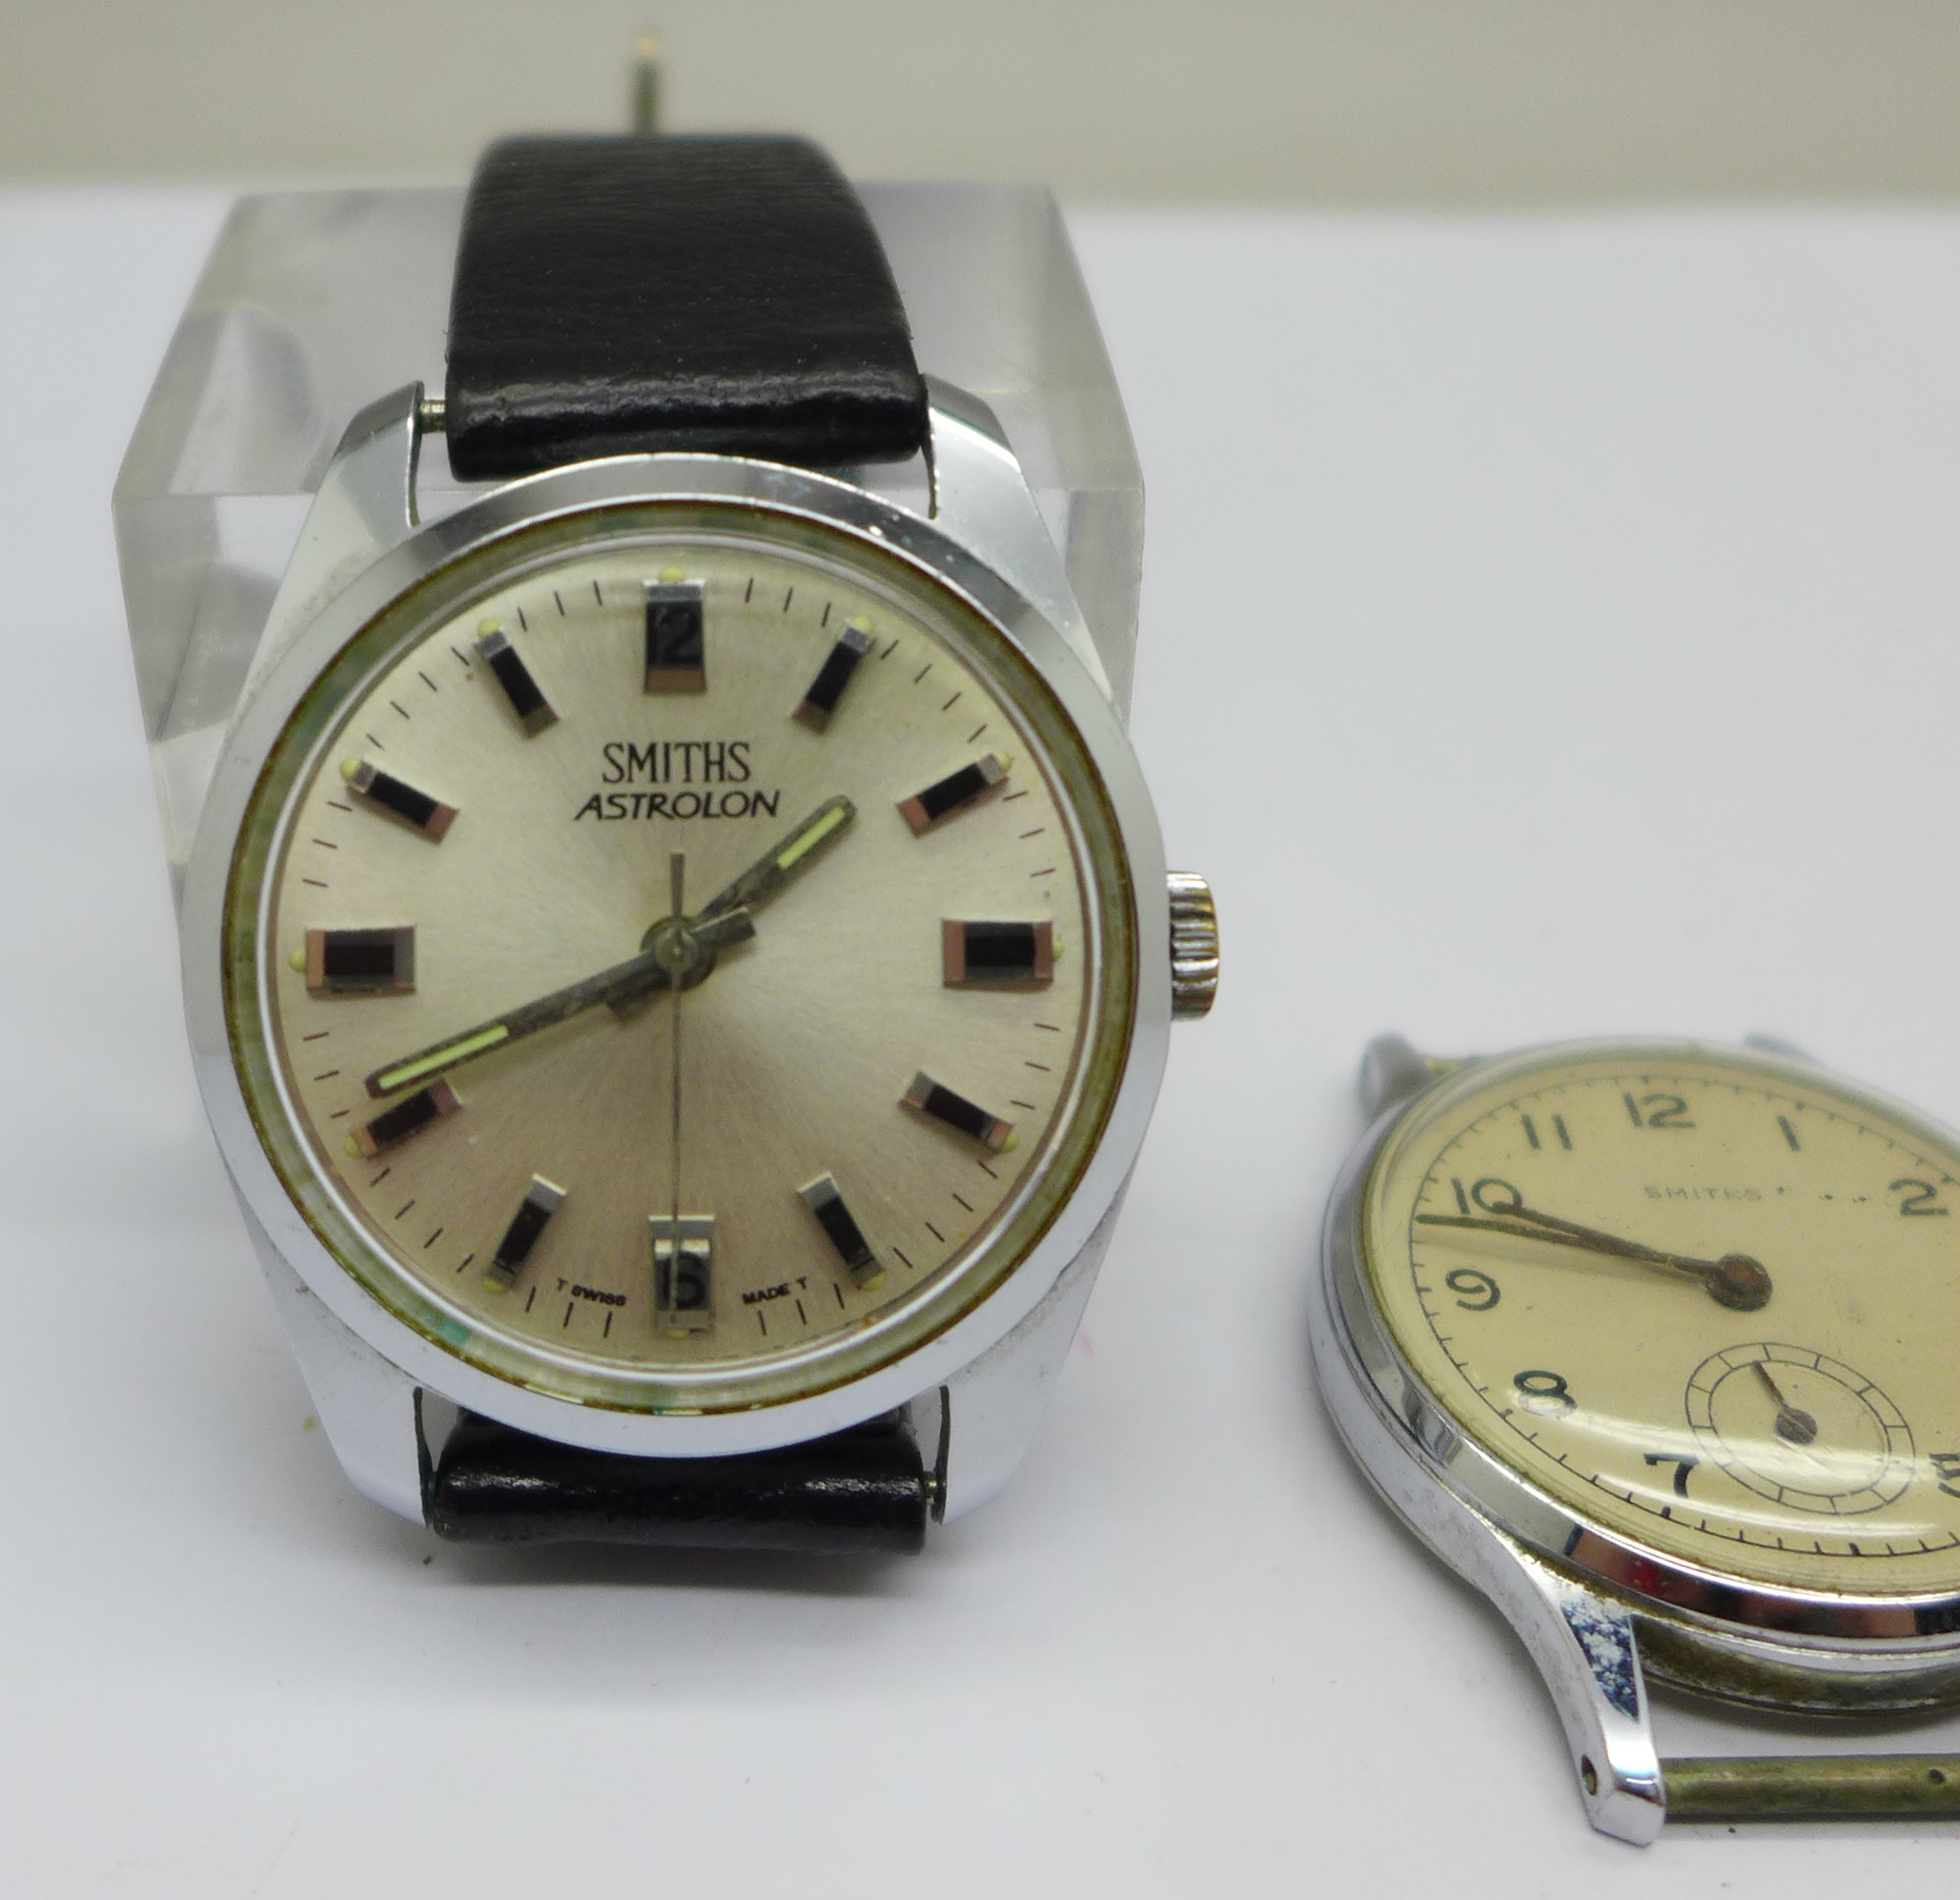 A Smiths Astral, Smiths Astrolon and one other Smiths wristwatch with De Luxe movement - Image 3 of 5